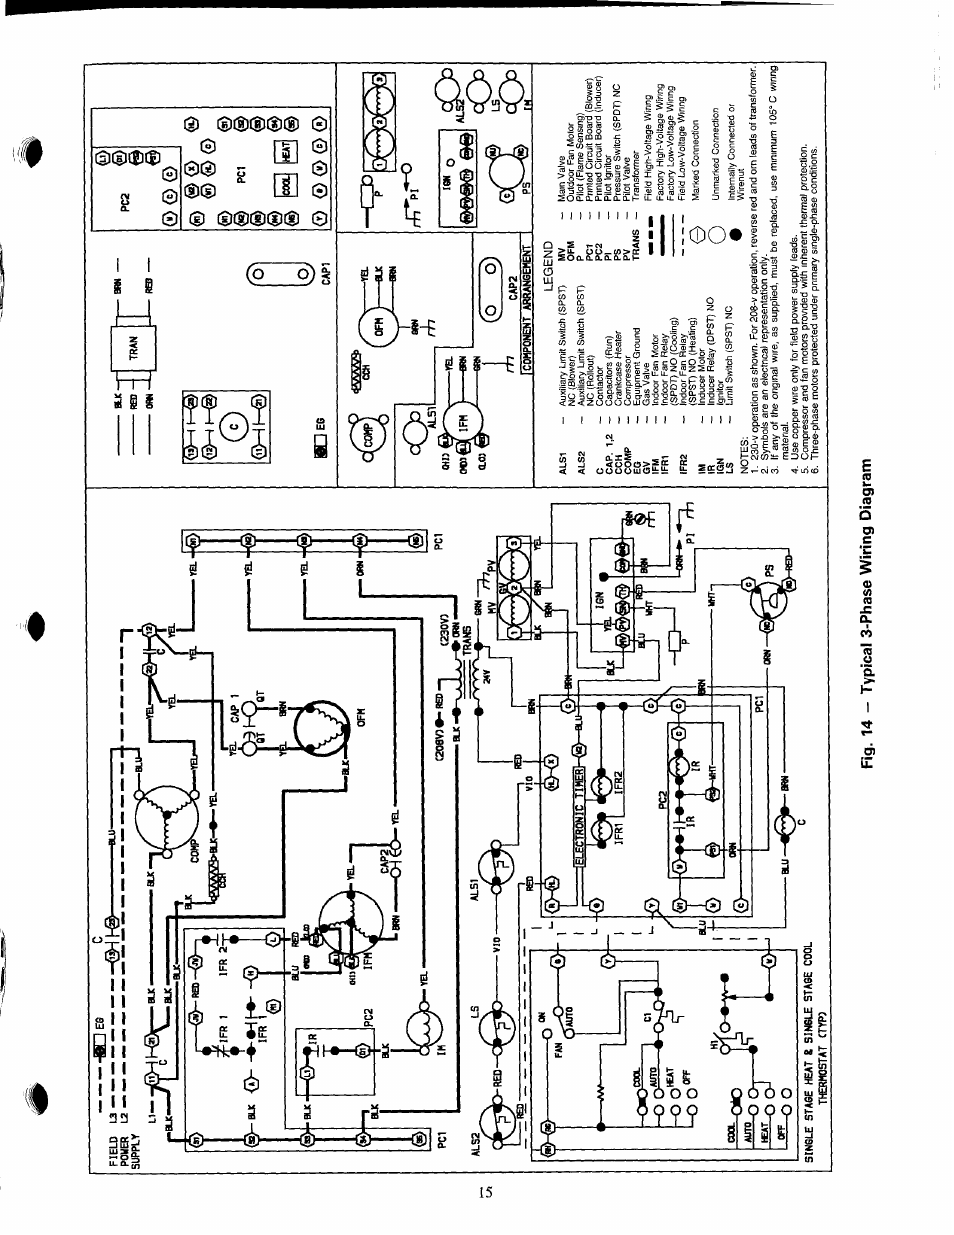 old carrier wiring diagrams 48tmd008a501